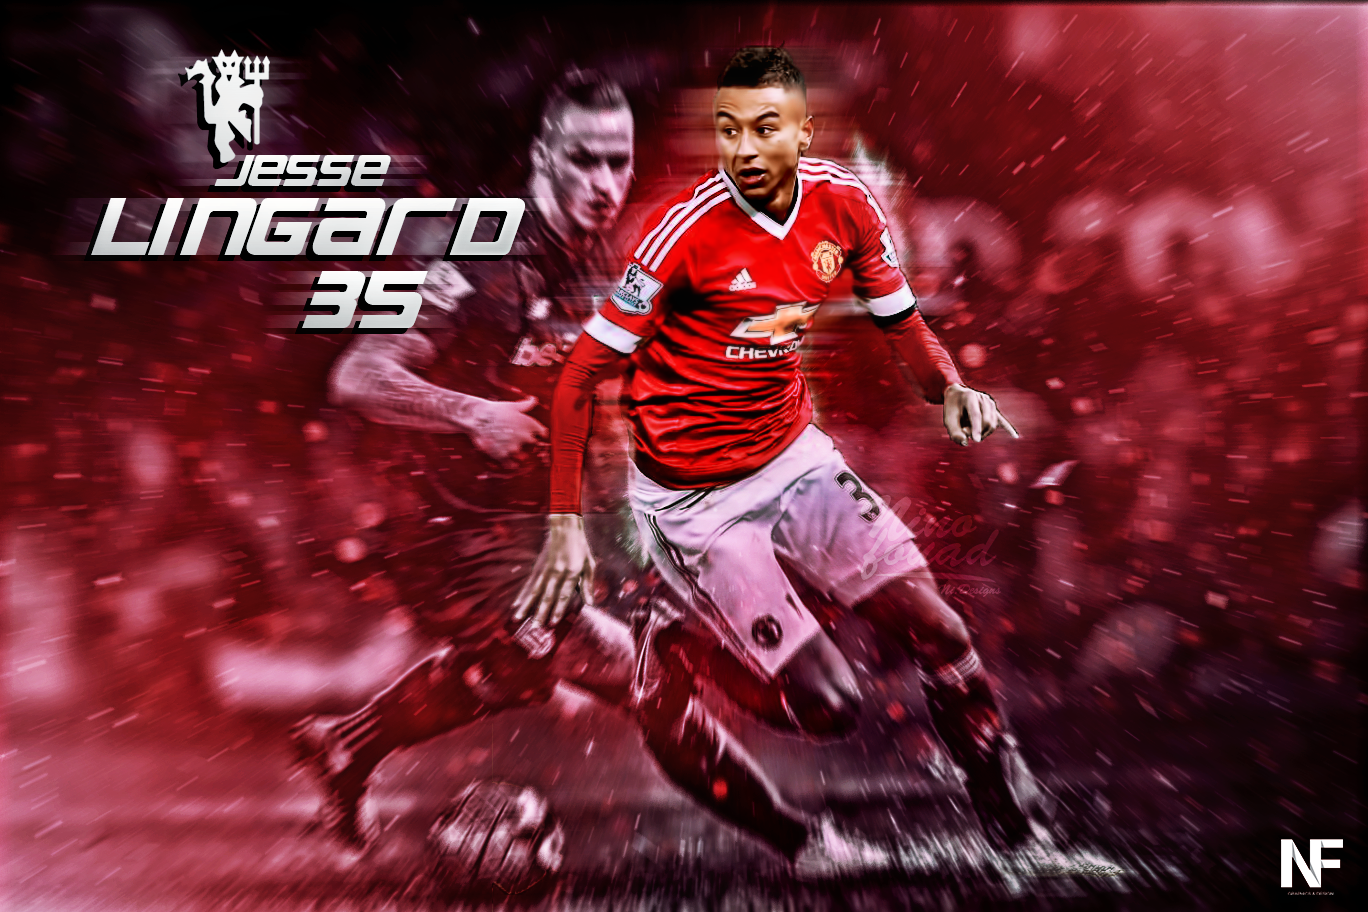 Wallpaper Edit Jesse Lingard Man Utd By Nino Gfx On Deviantart